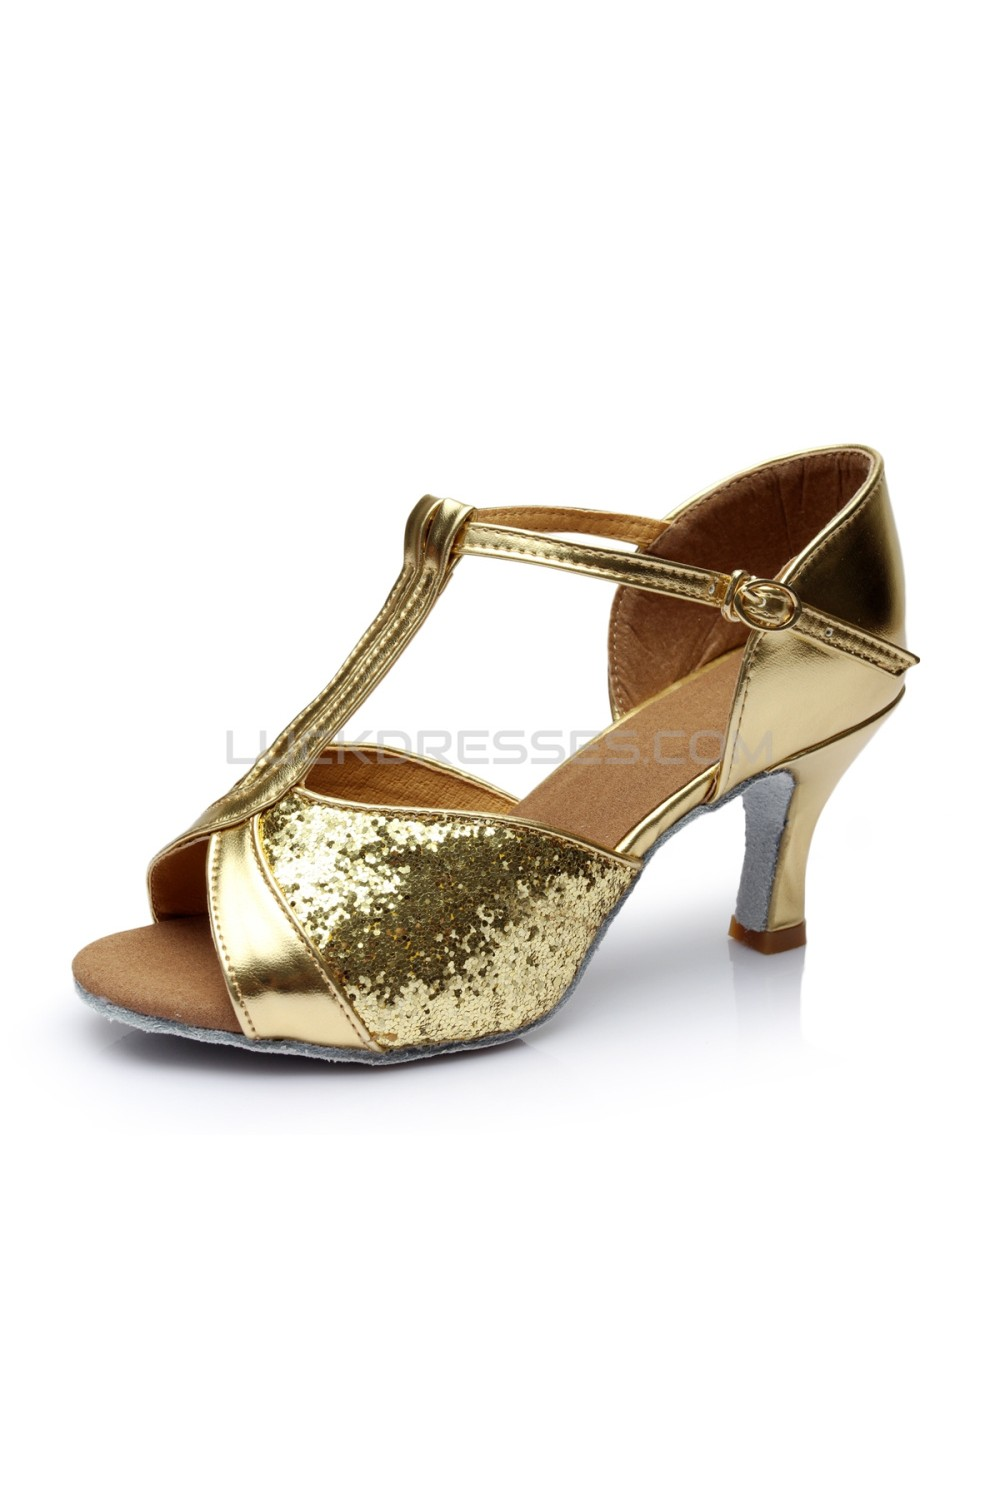 Womens Gold Sparkling Glitter Heels Sandals Latin Salsa T Strap Dance Shoes Wedding Party D602029